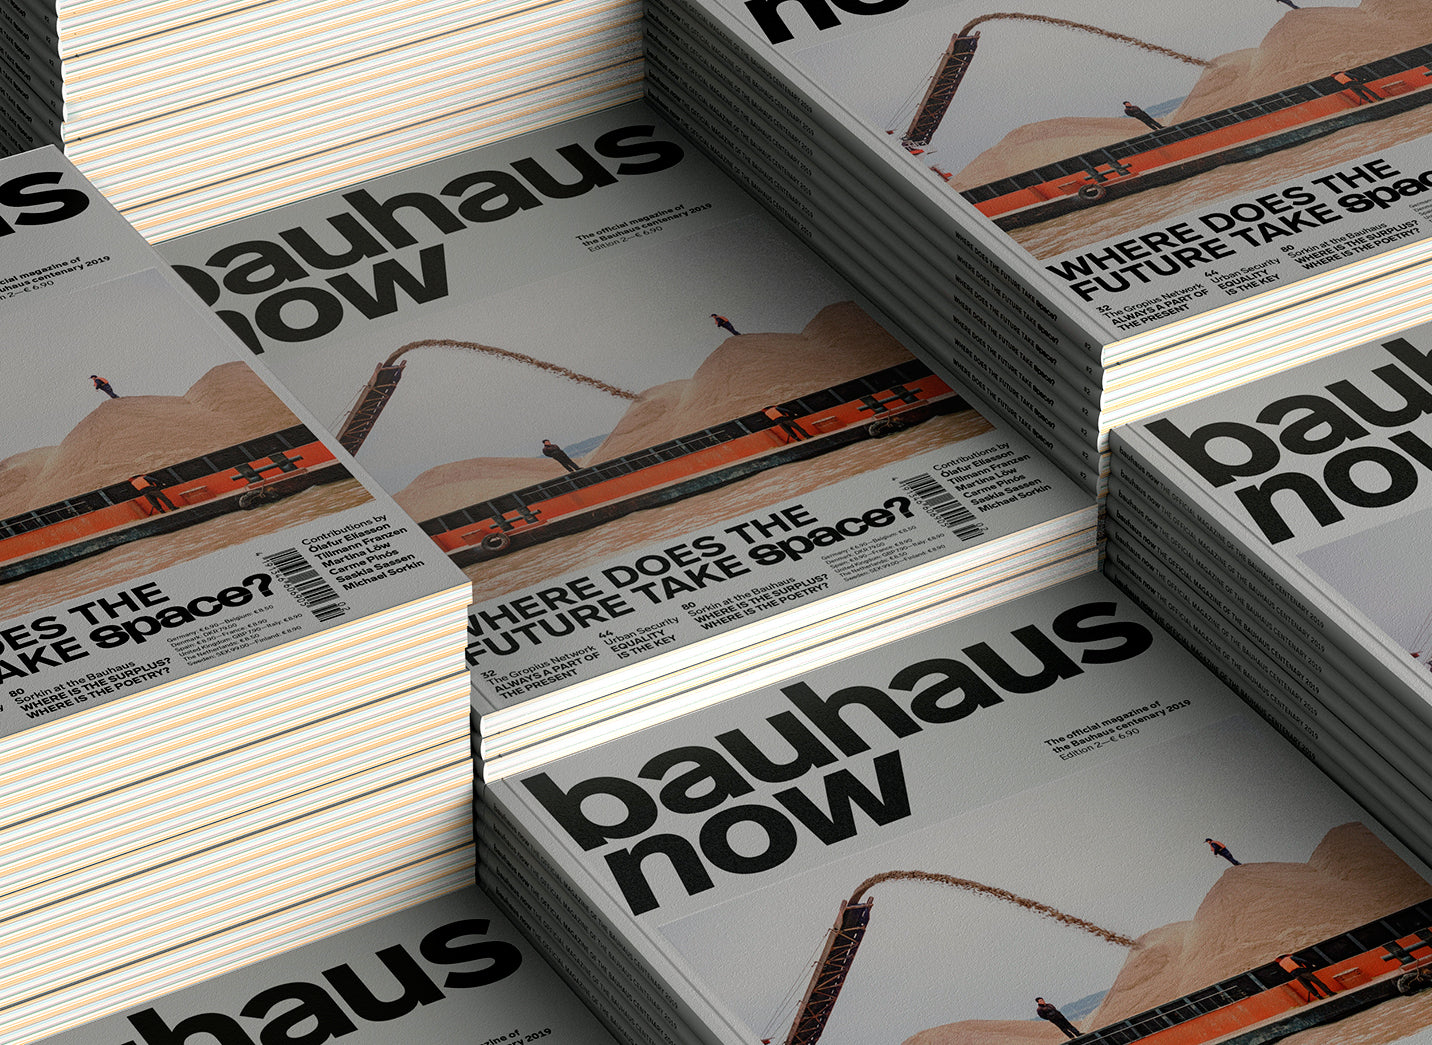 Stan Hema: bauhaus now